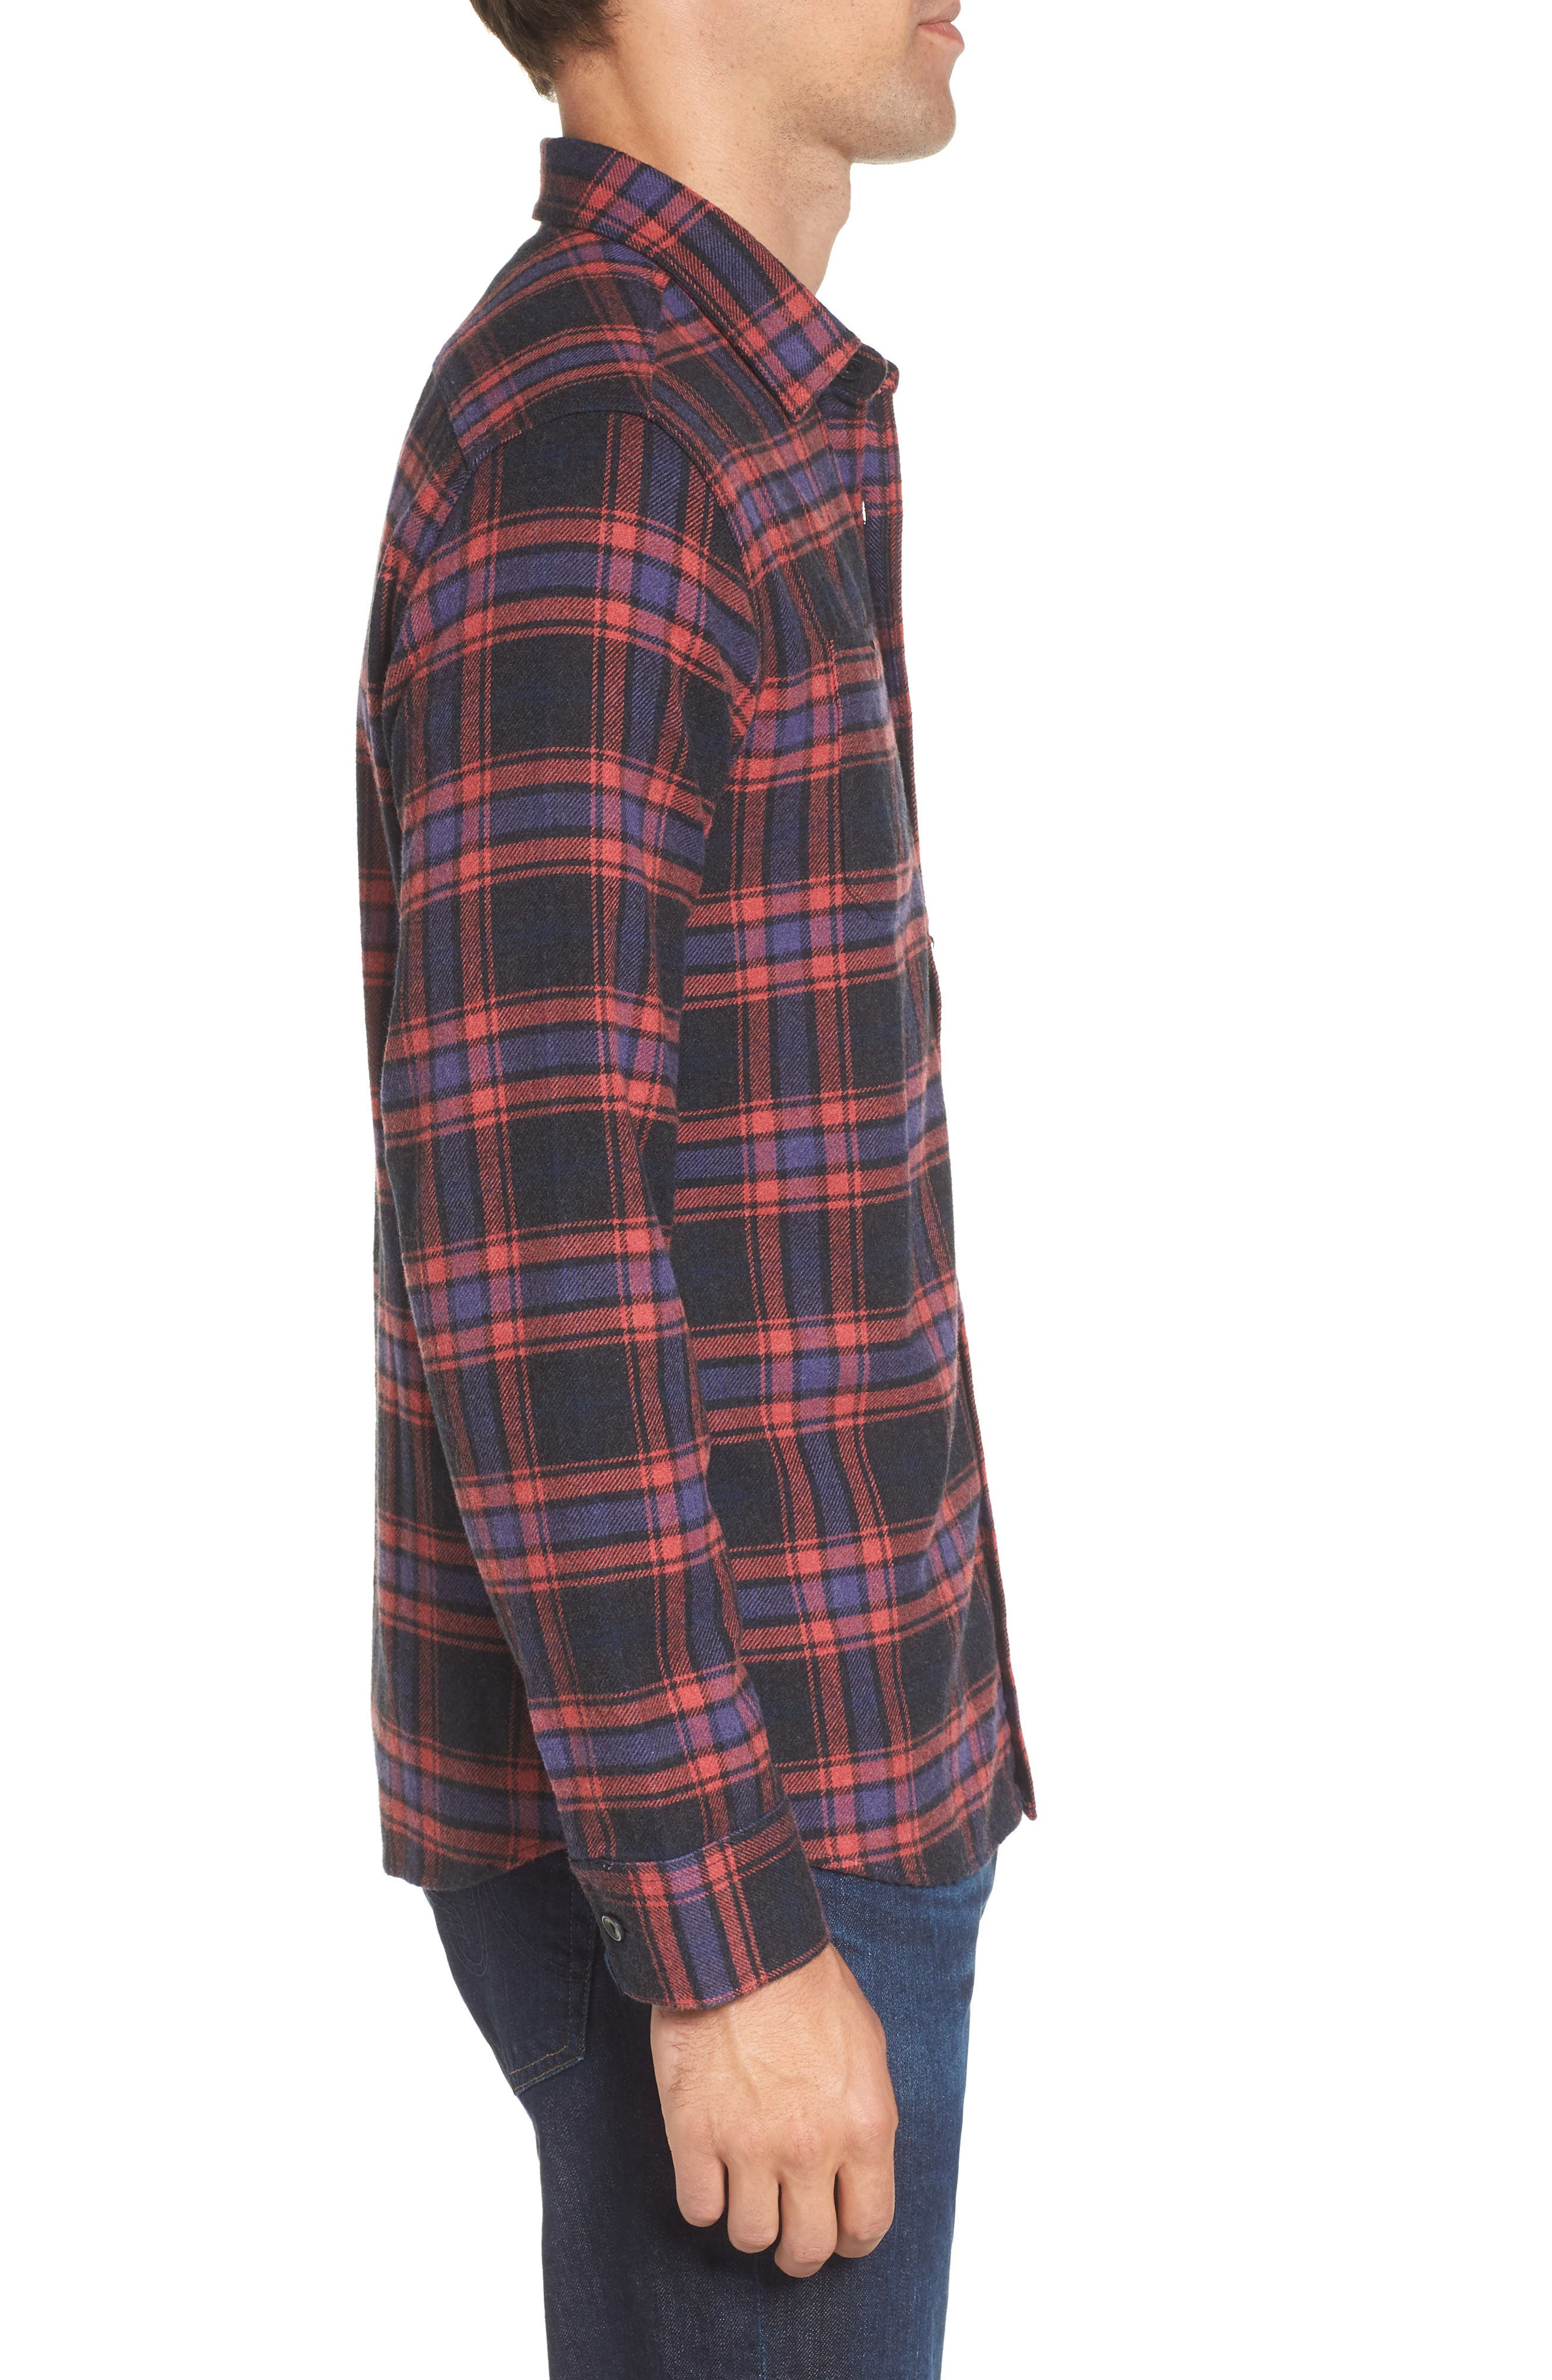 Chaucer Heritage Flannel Shirt,                             Alternate thumbnail 3, color,